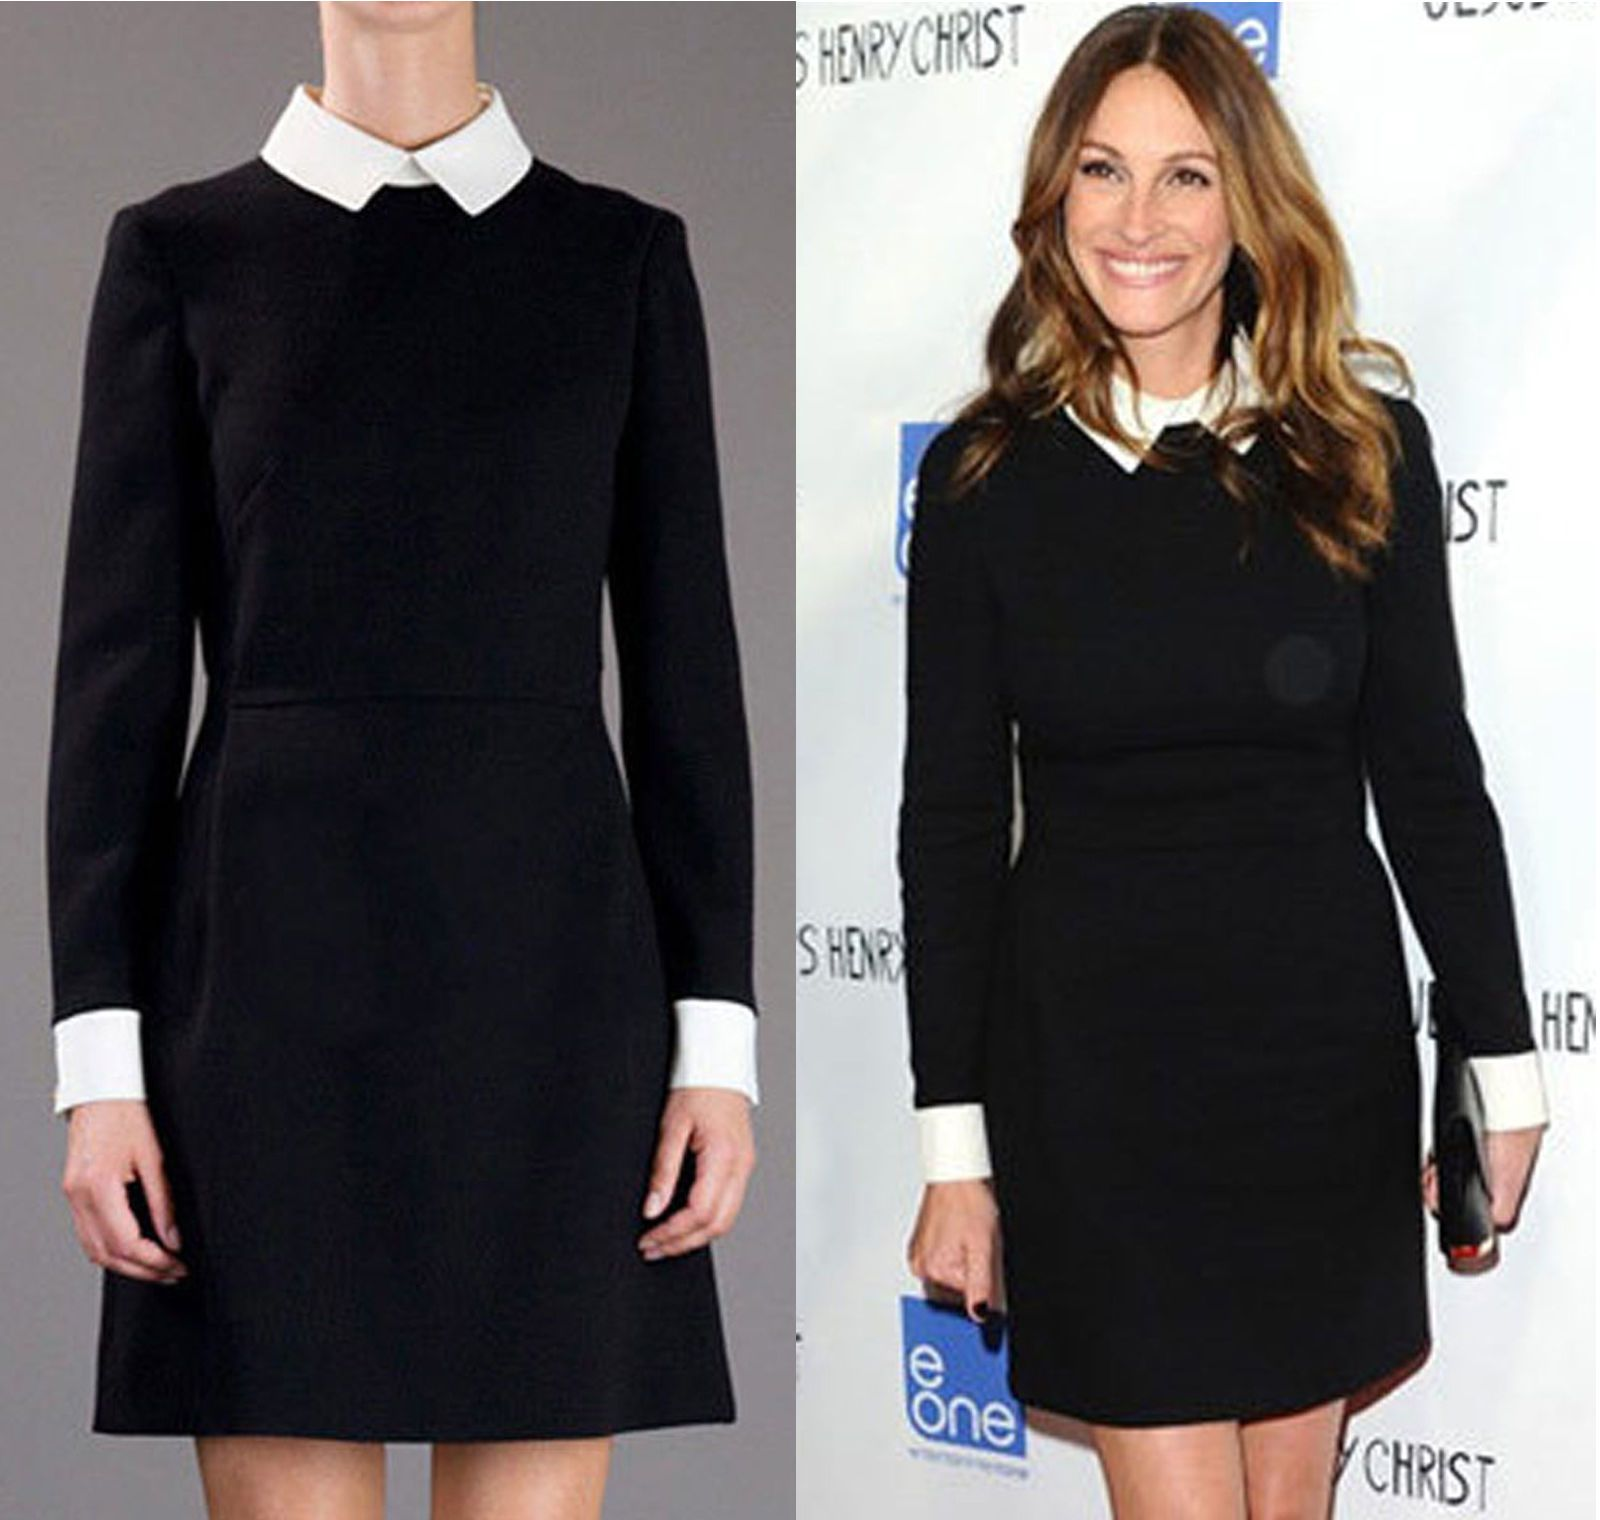 Black dress ebay - Details About Womens Black Block Shift White Collar Cuff Fit Long Sleeve Peter Pan Mini Dress